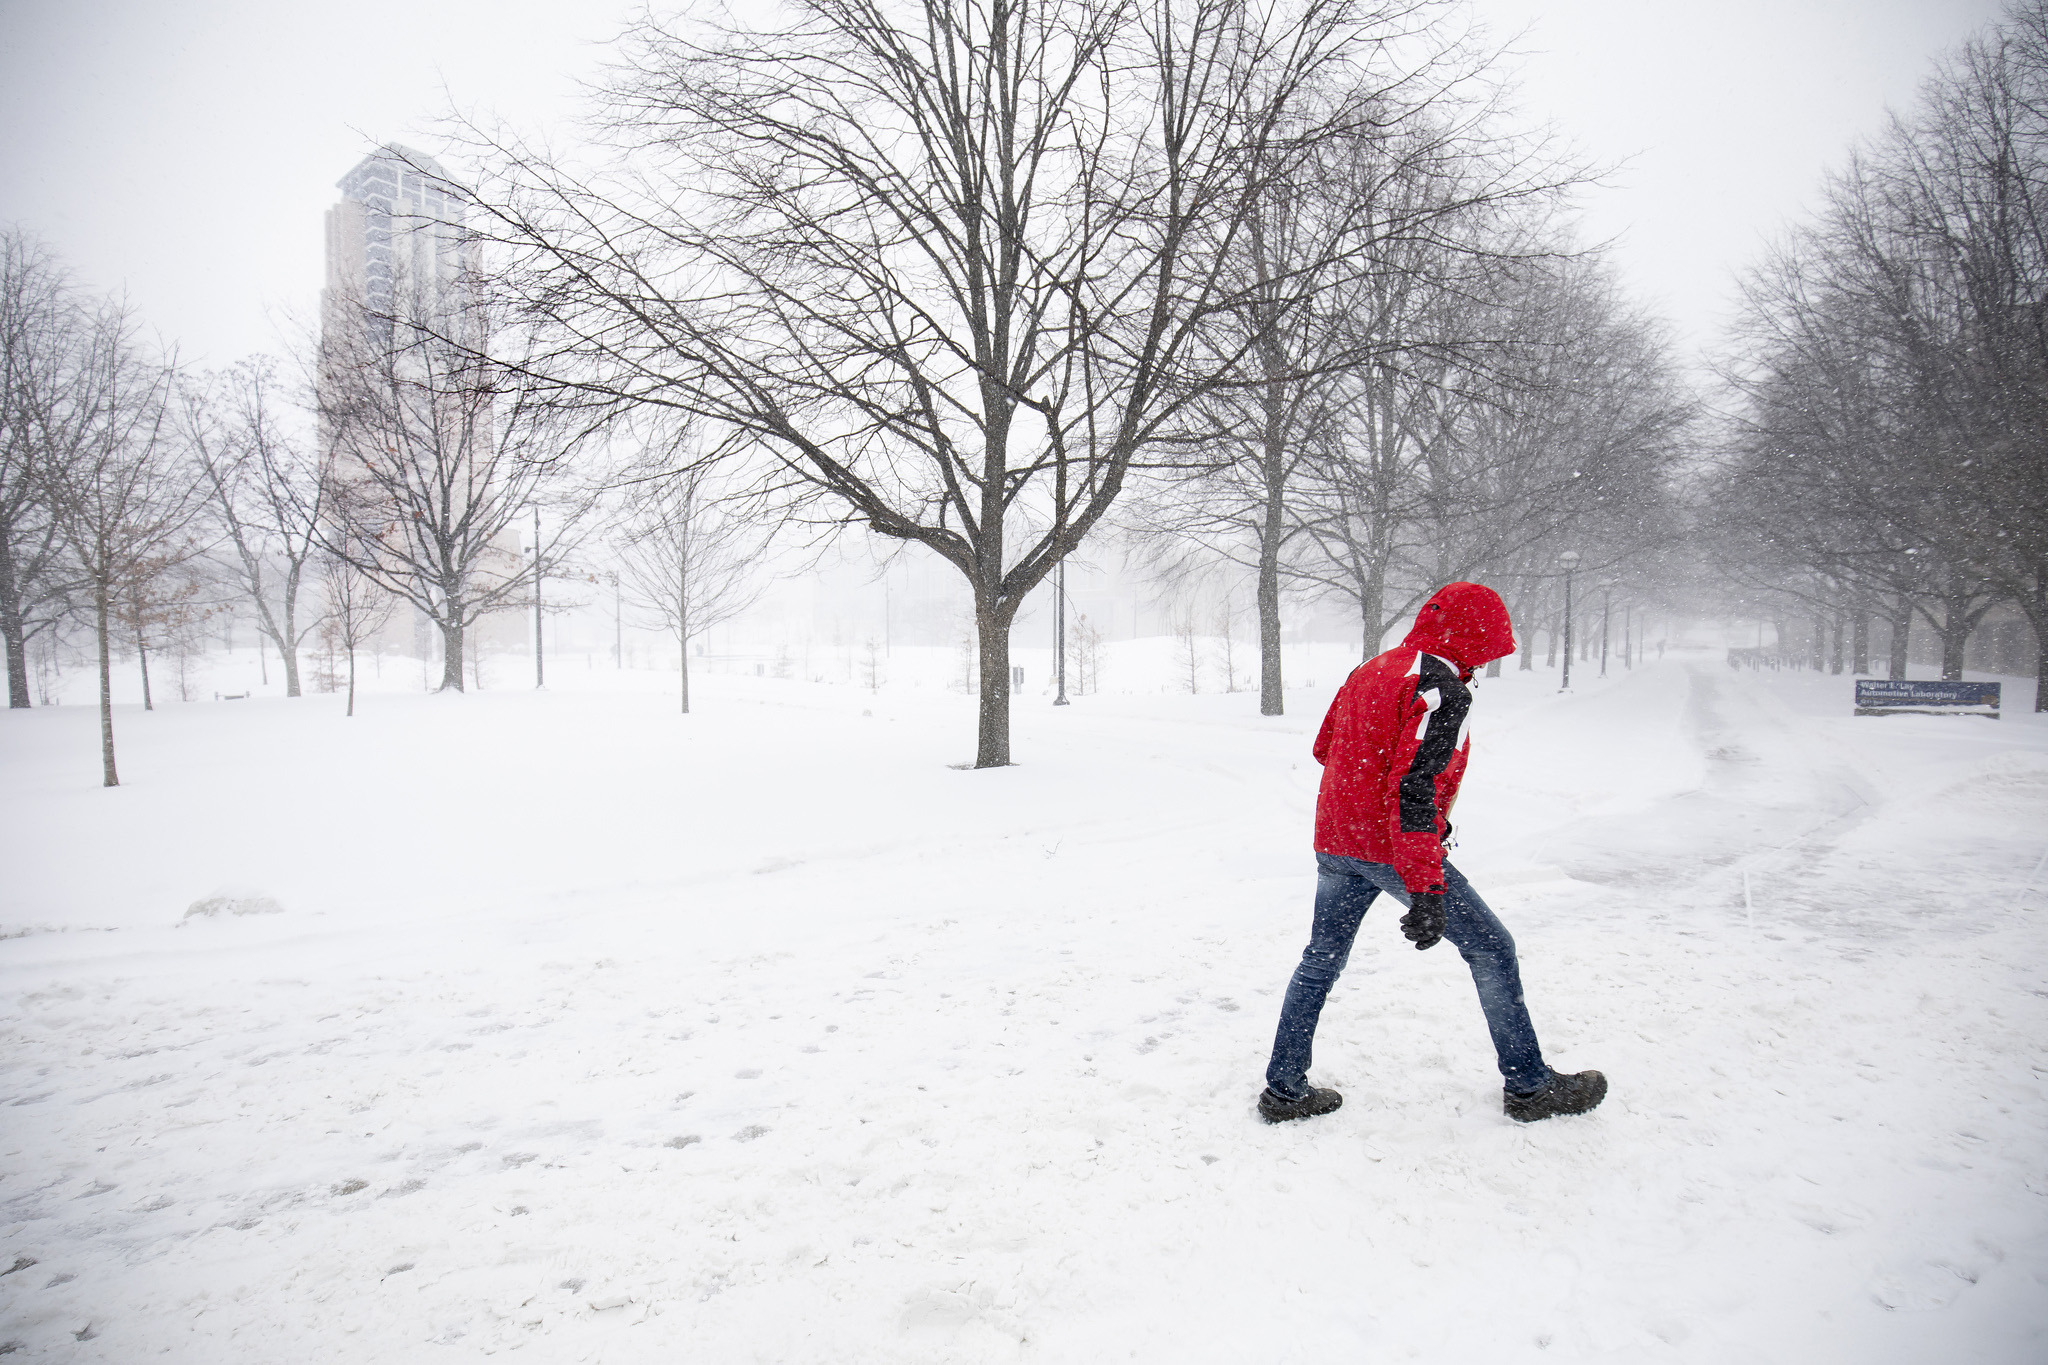 A photograph of a person walking through the snow on North Campus of the University of Michigan in Ann Arbor, MI